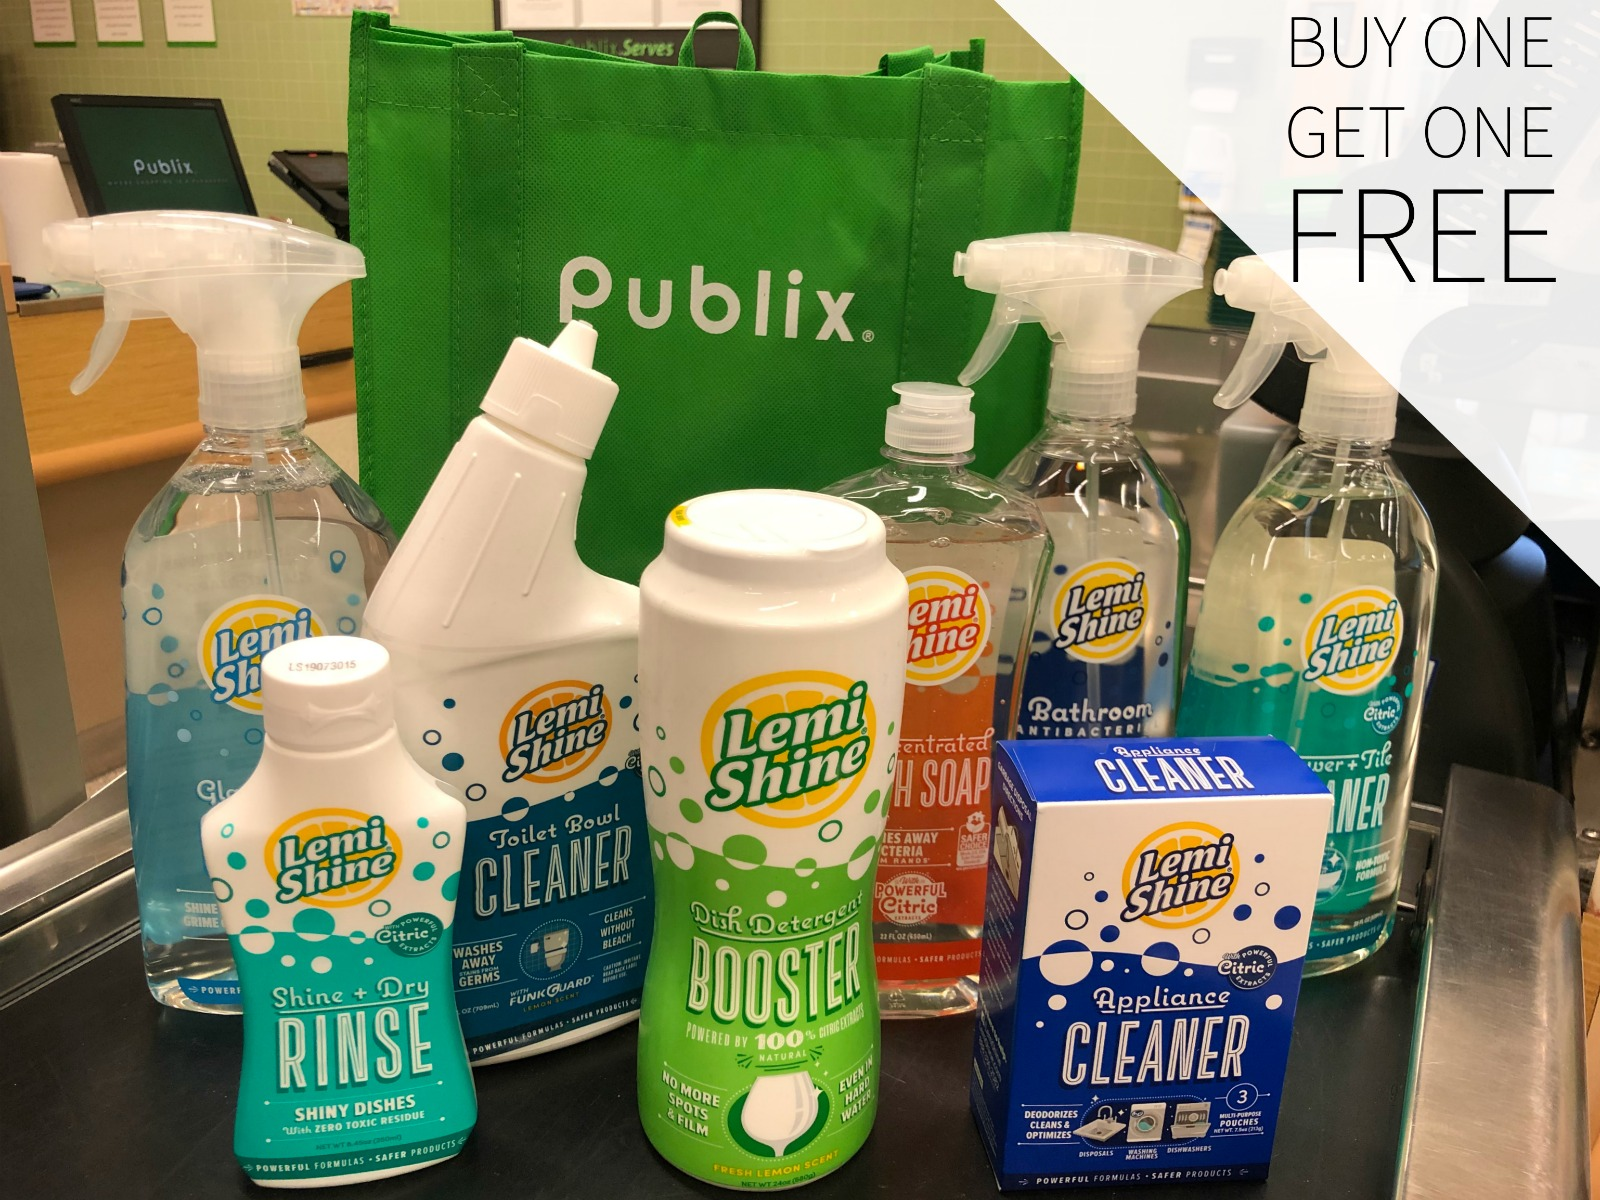 Stock Up On Lemi Shine Products During The BOGO Sale & Get Your Home Ready For The Holidays on I Heart Publix